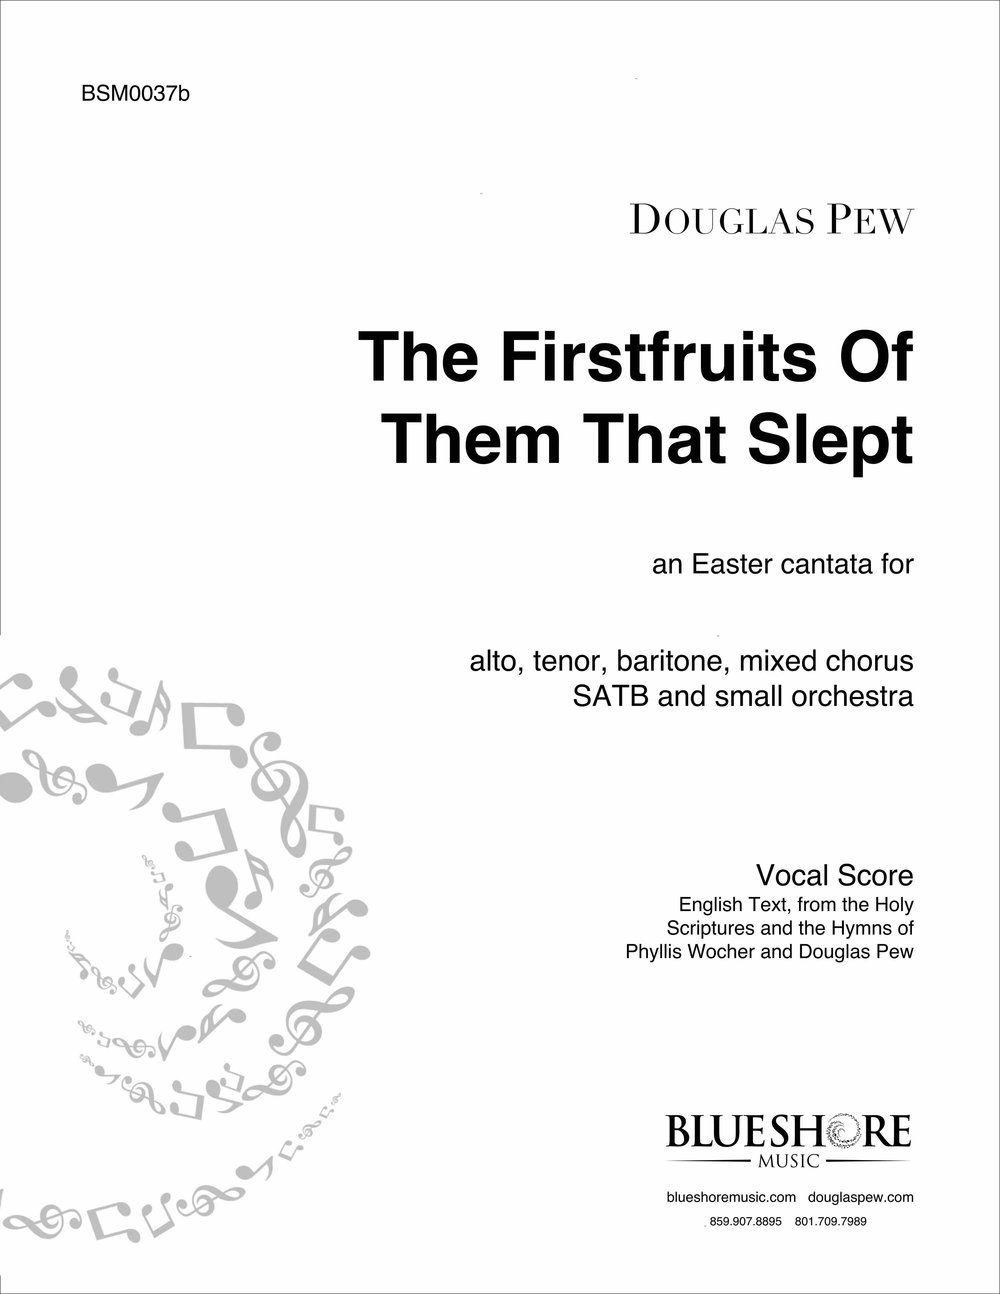 The Firstfruits of Them That Slept, Easter Cantata for Soloists, SATB, and Small Ensemble